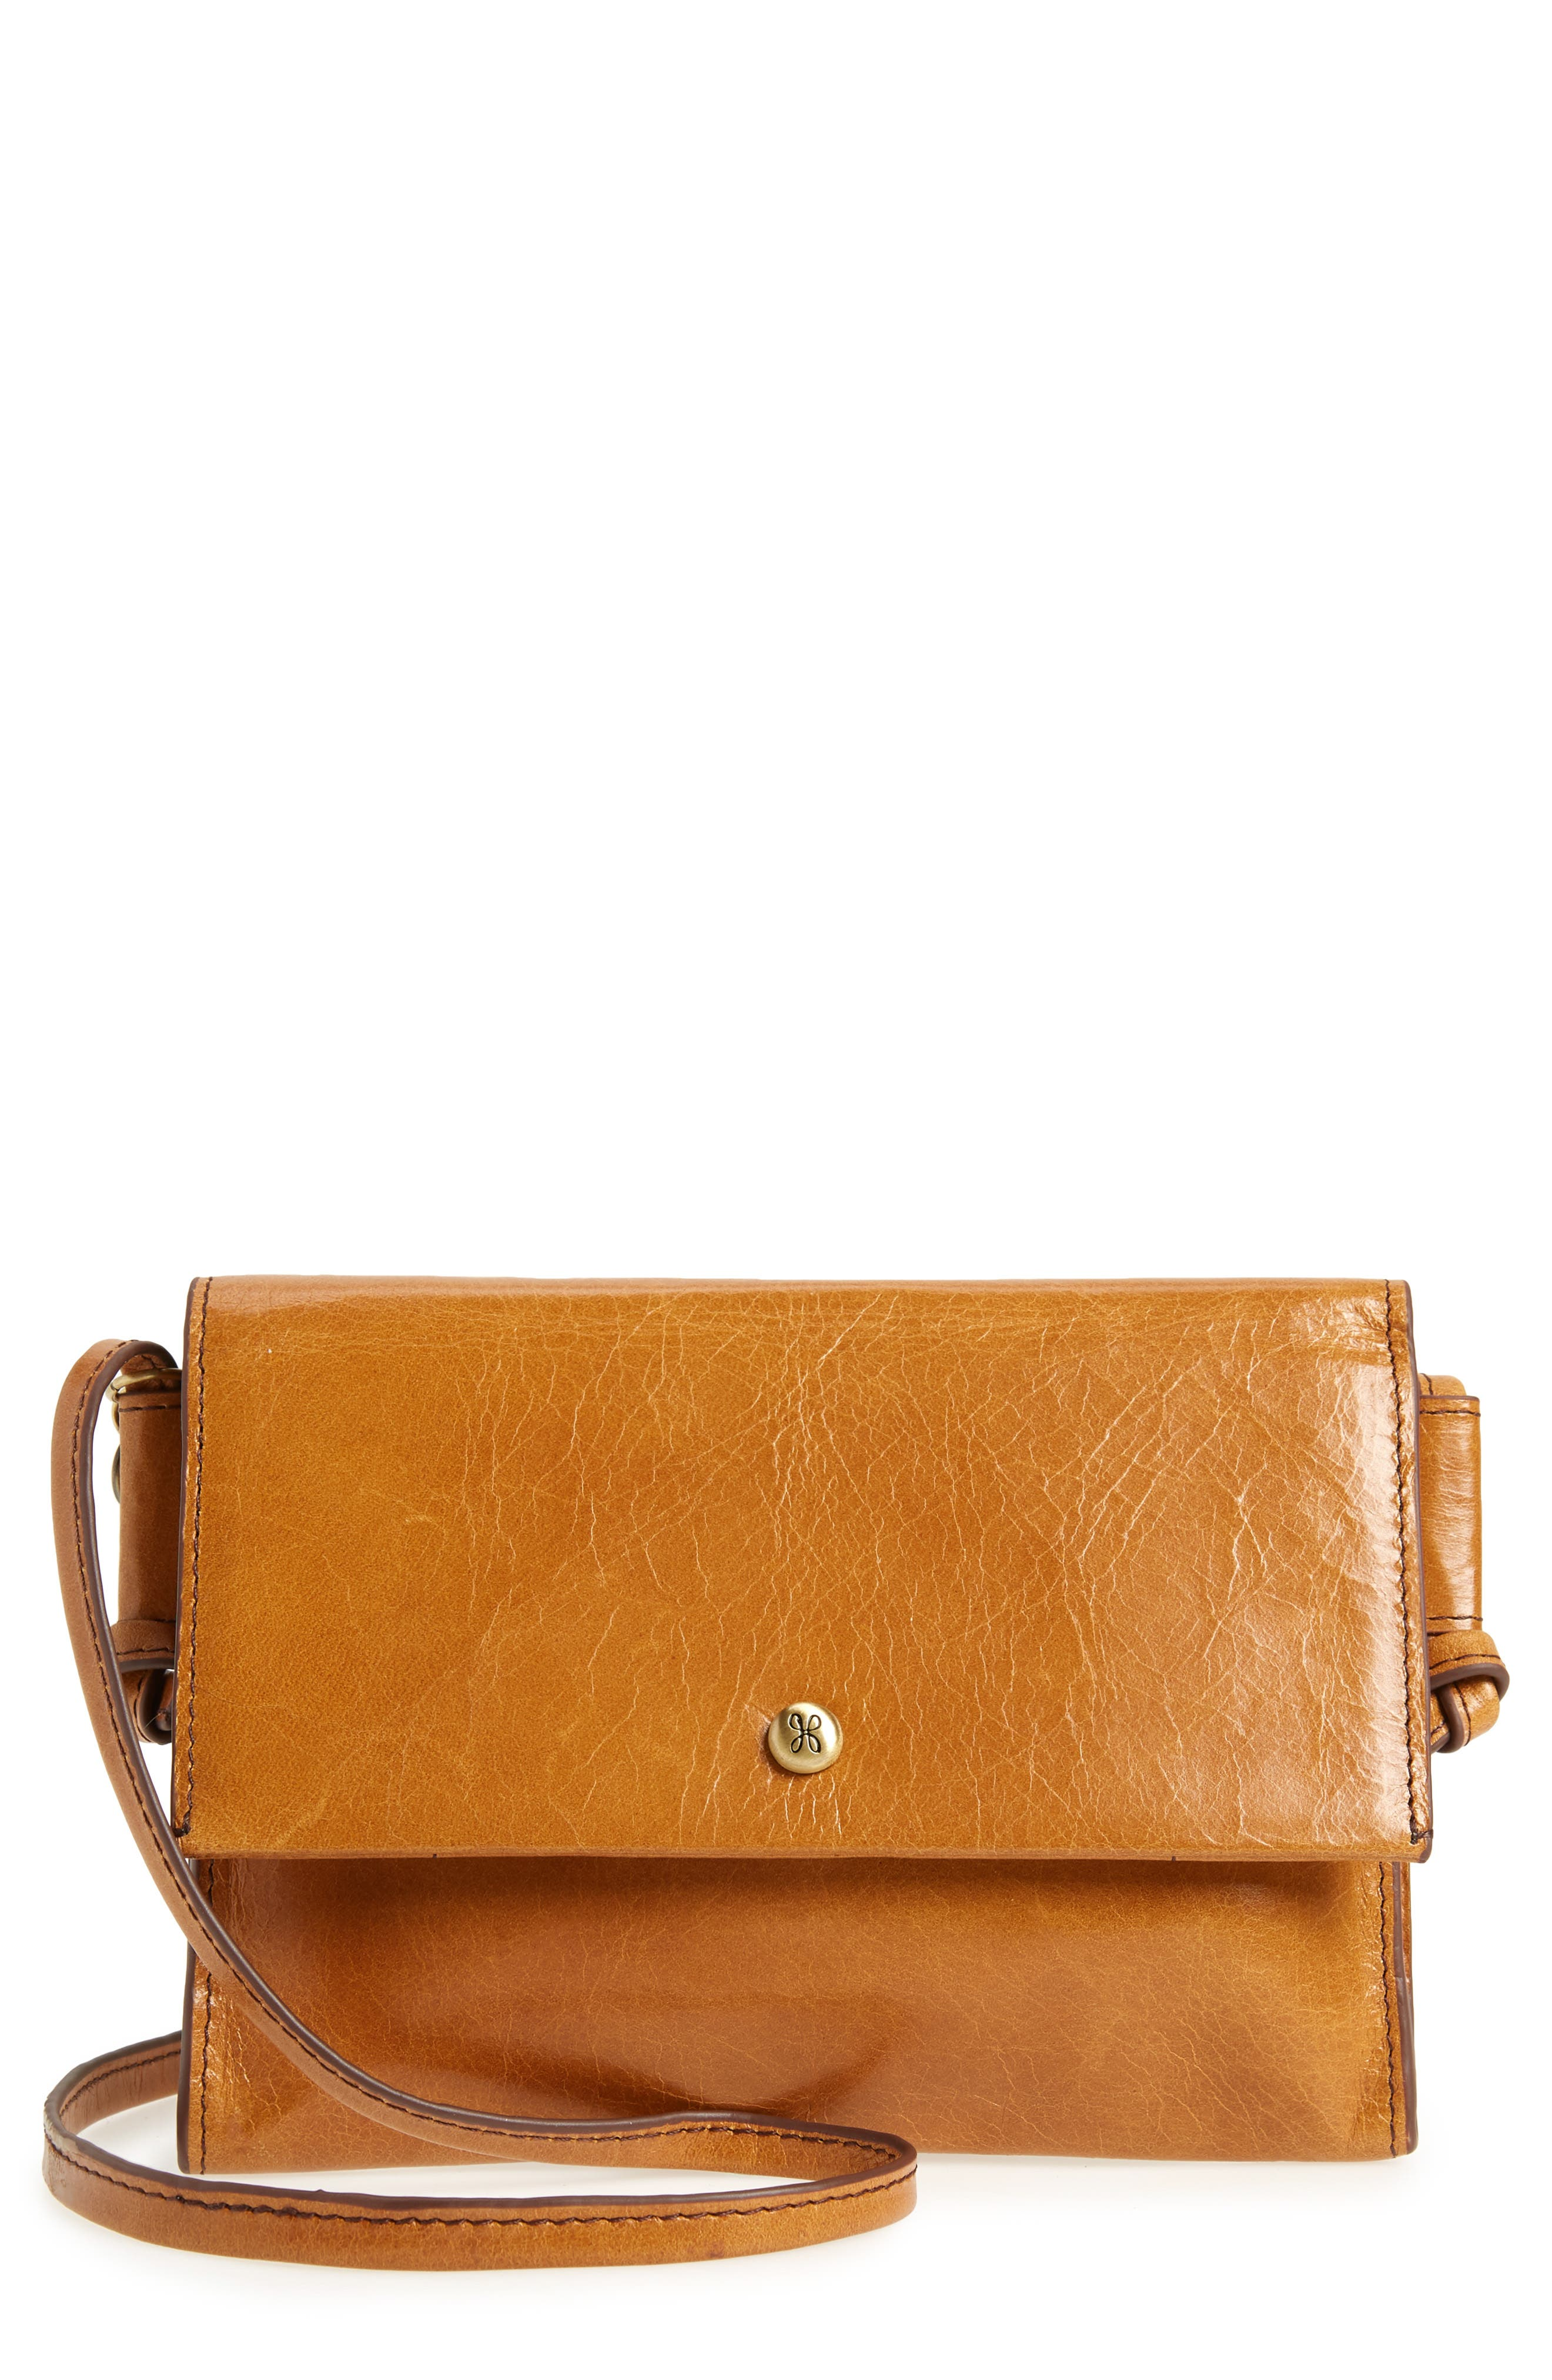 Leather Zip Around Wallet - yellow board by VIDA VIDA Sale Prices zPevsjeq